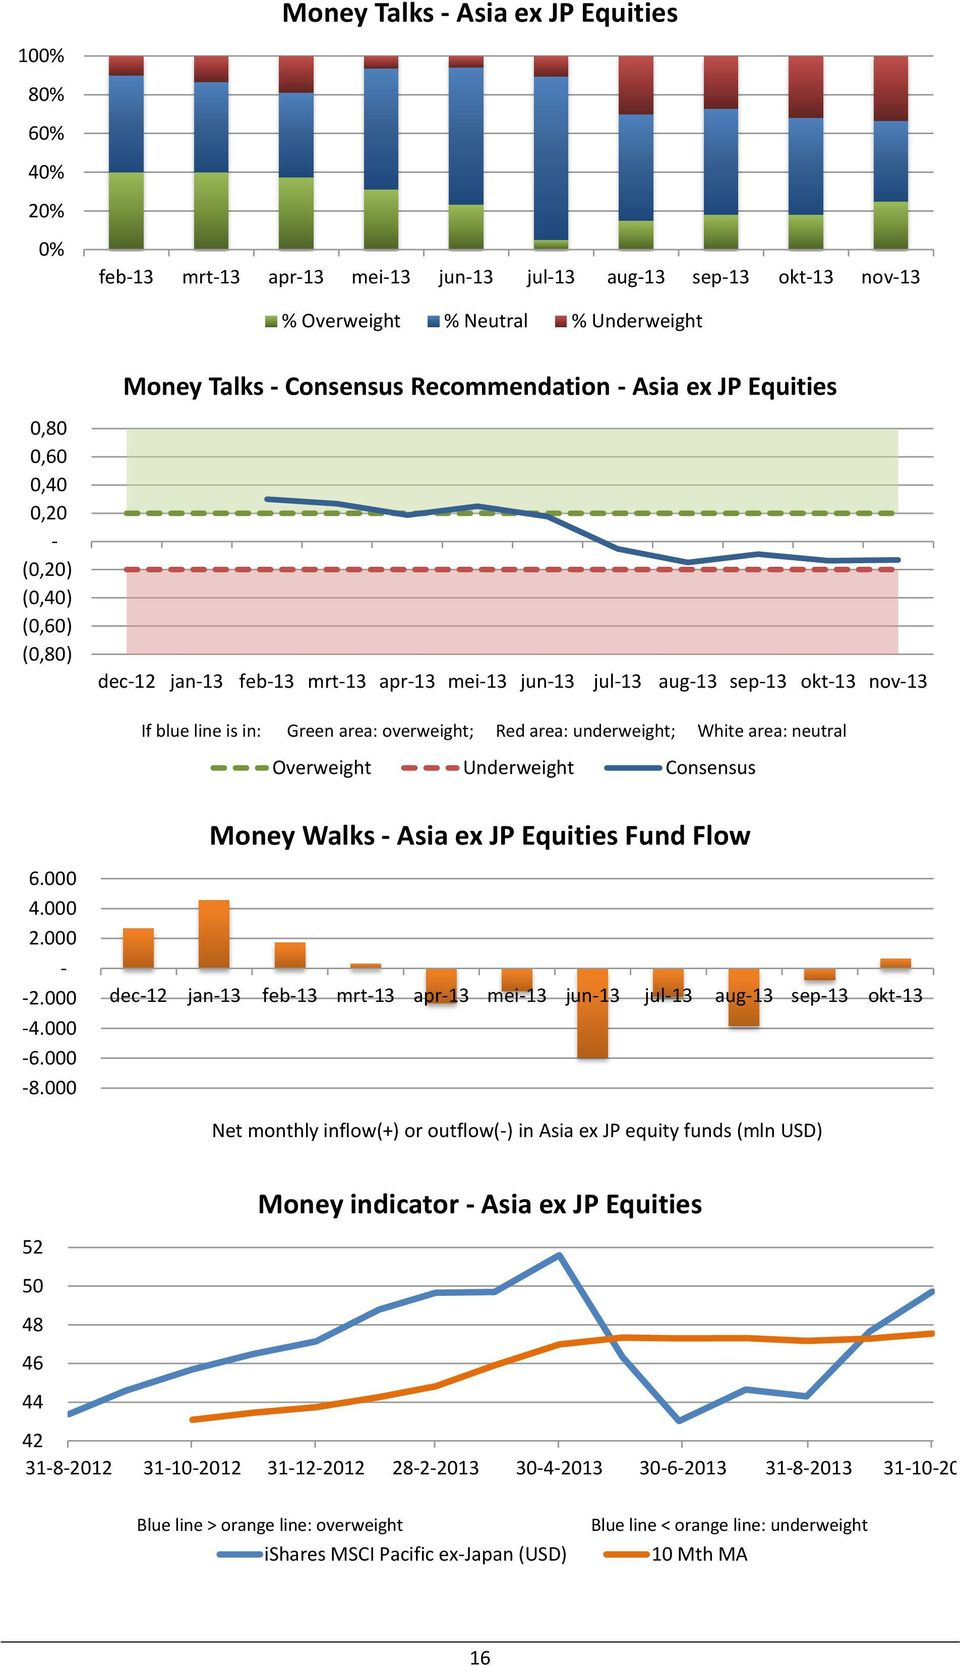 000 Money Walks Asia ex JP Equities Fund Flow dec12 jan13 feb13 mrt13 apr13 mei13 jun13 jul13 aug13 sep13 okt13 Net monthly inflow(+) or outflow() in Asia ex JP